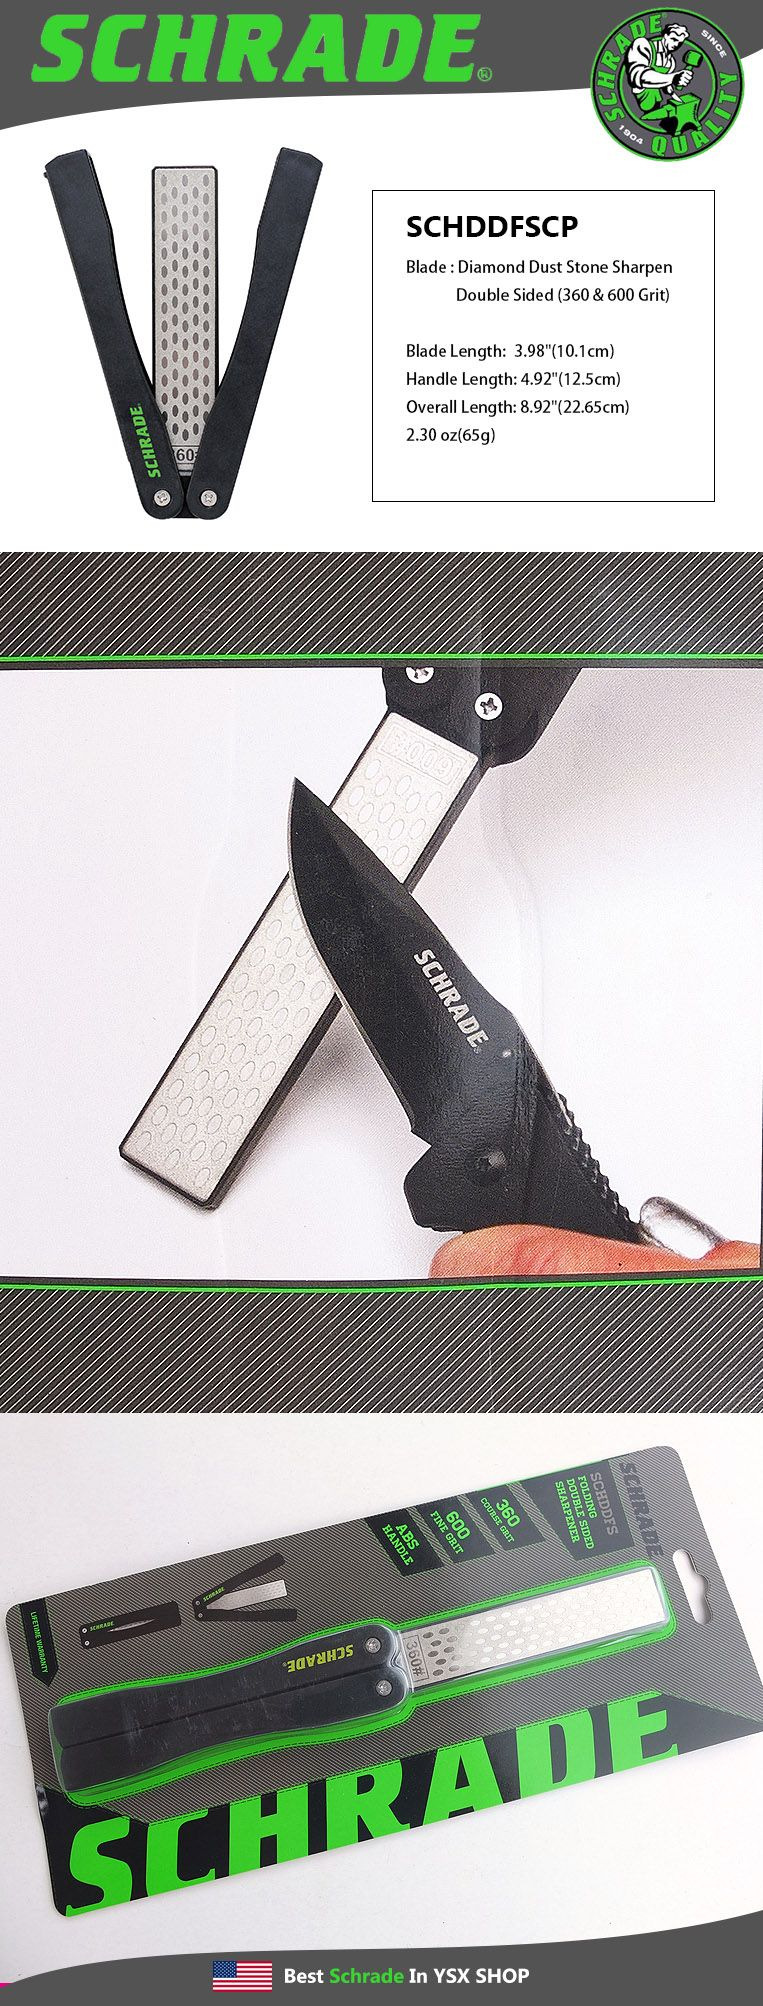 Schrade Double Sided 360//600 Diamond Dust Folding Sharpening Stone SCHDDFSCP